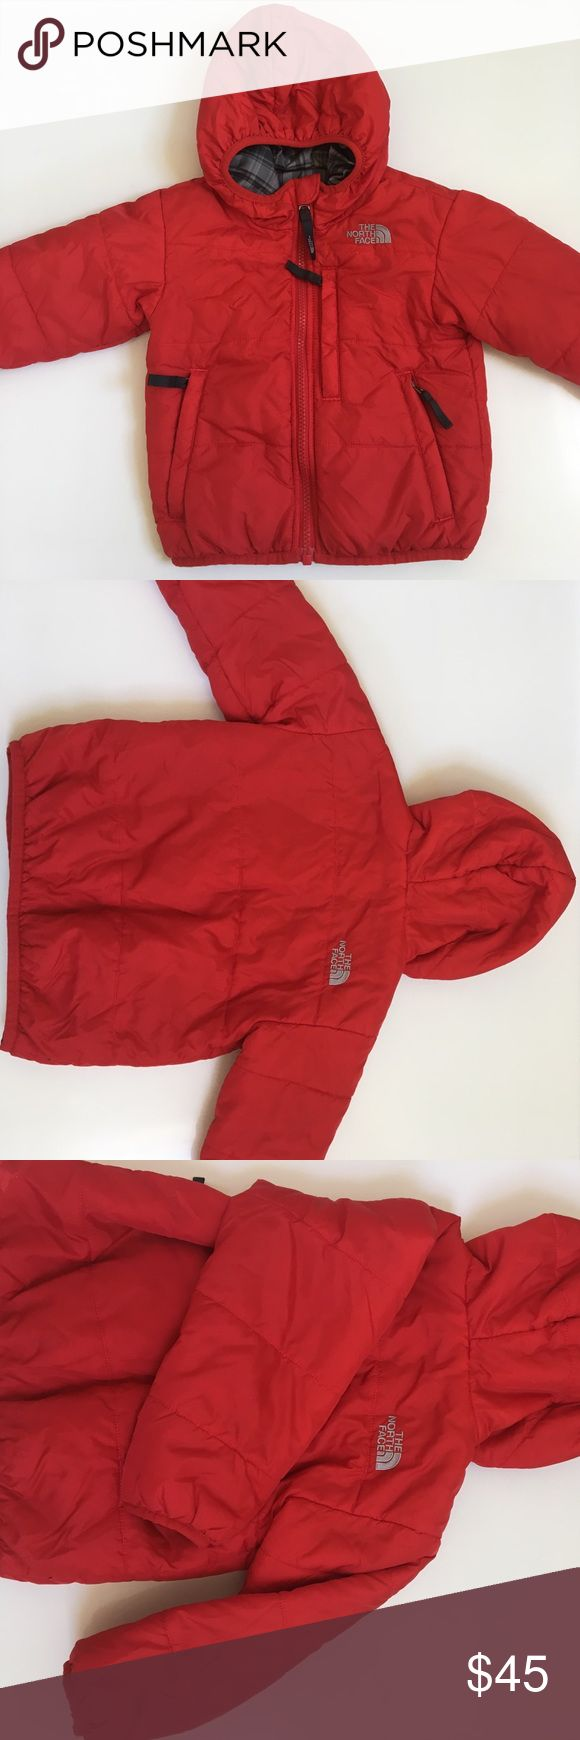 { THE NORTH FACE } Jacket THE NORTH FACE jacket reversible, one side is red with grey accents and other is patterned in grey tones with red accents (please see pictures), both sides have pockets and embroidered labels, soft and a light fluffy puff to this to help keep your little one cozy, hooded. Previously used and has normal wash and wear to it from a little one but in good condition. The North Face Jackets & Coats